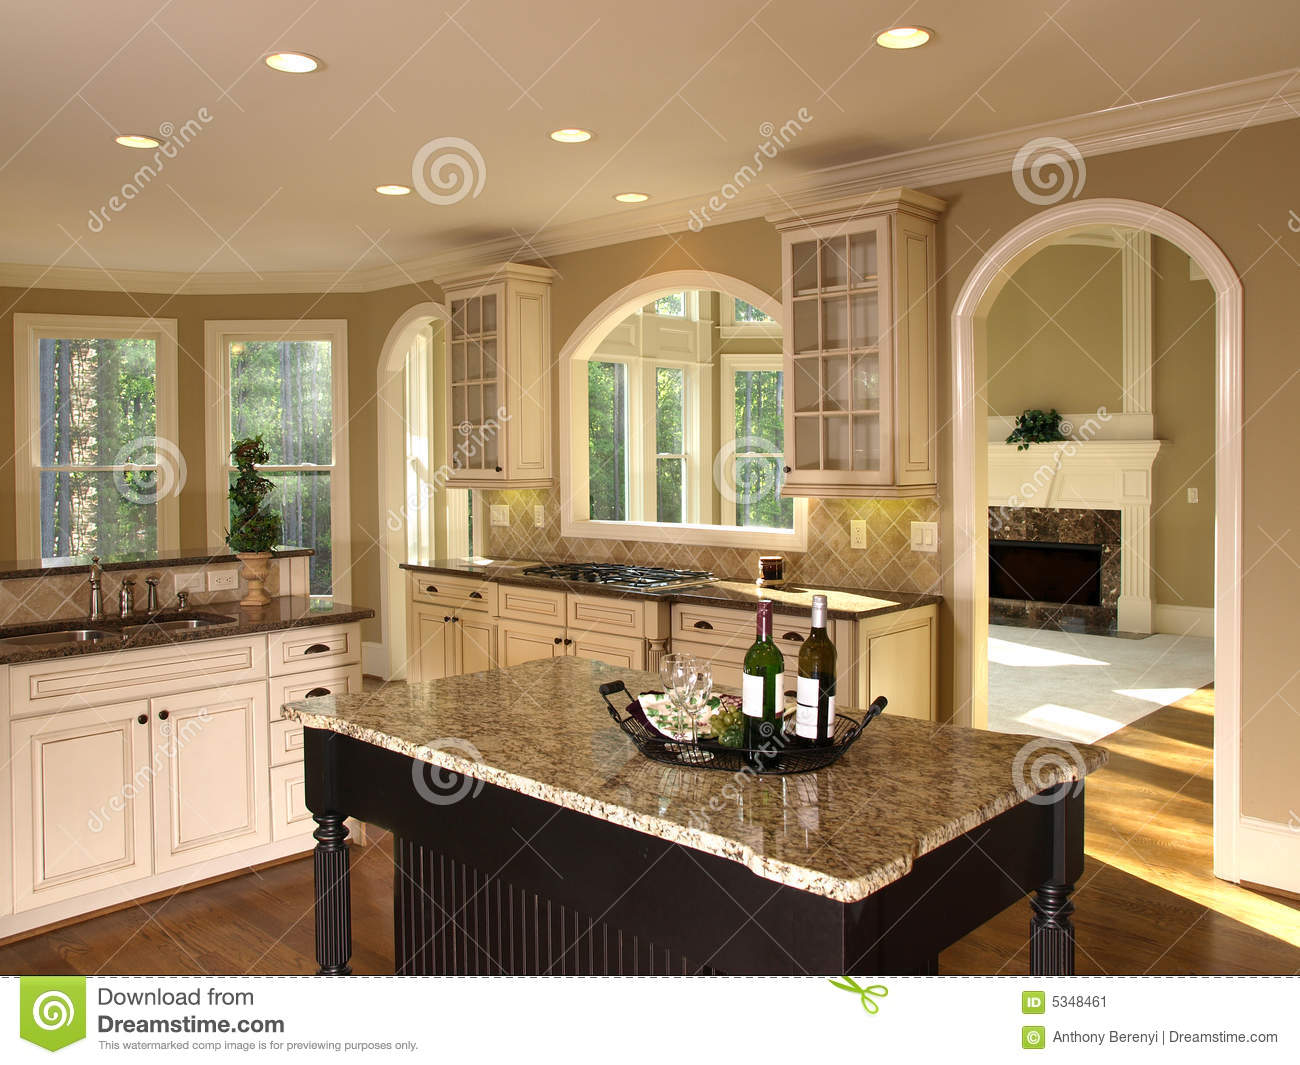 Meuble Tv Bois Design Luxury Model Home Kitchen Island Stock Image - Image: 5348461